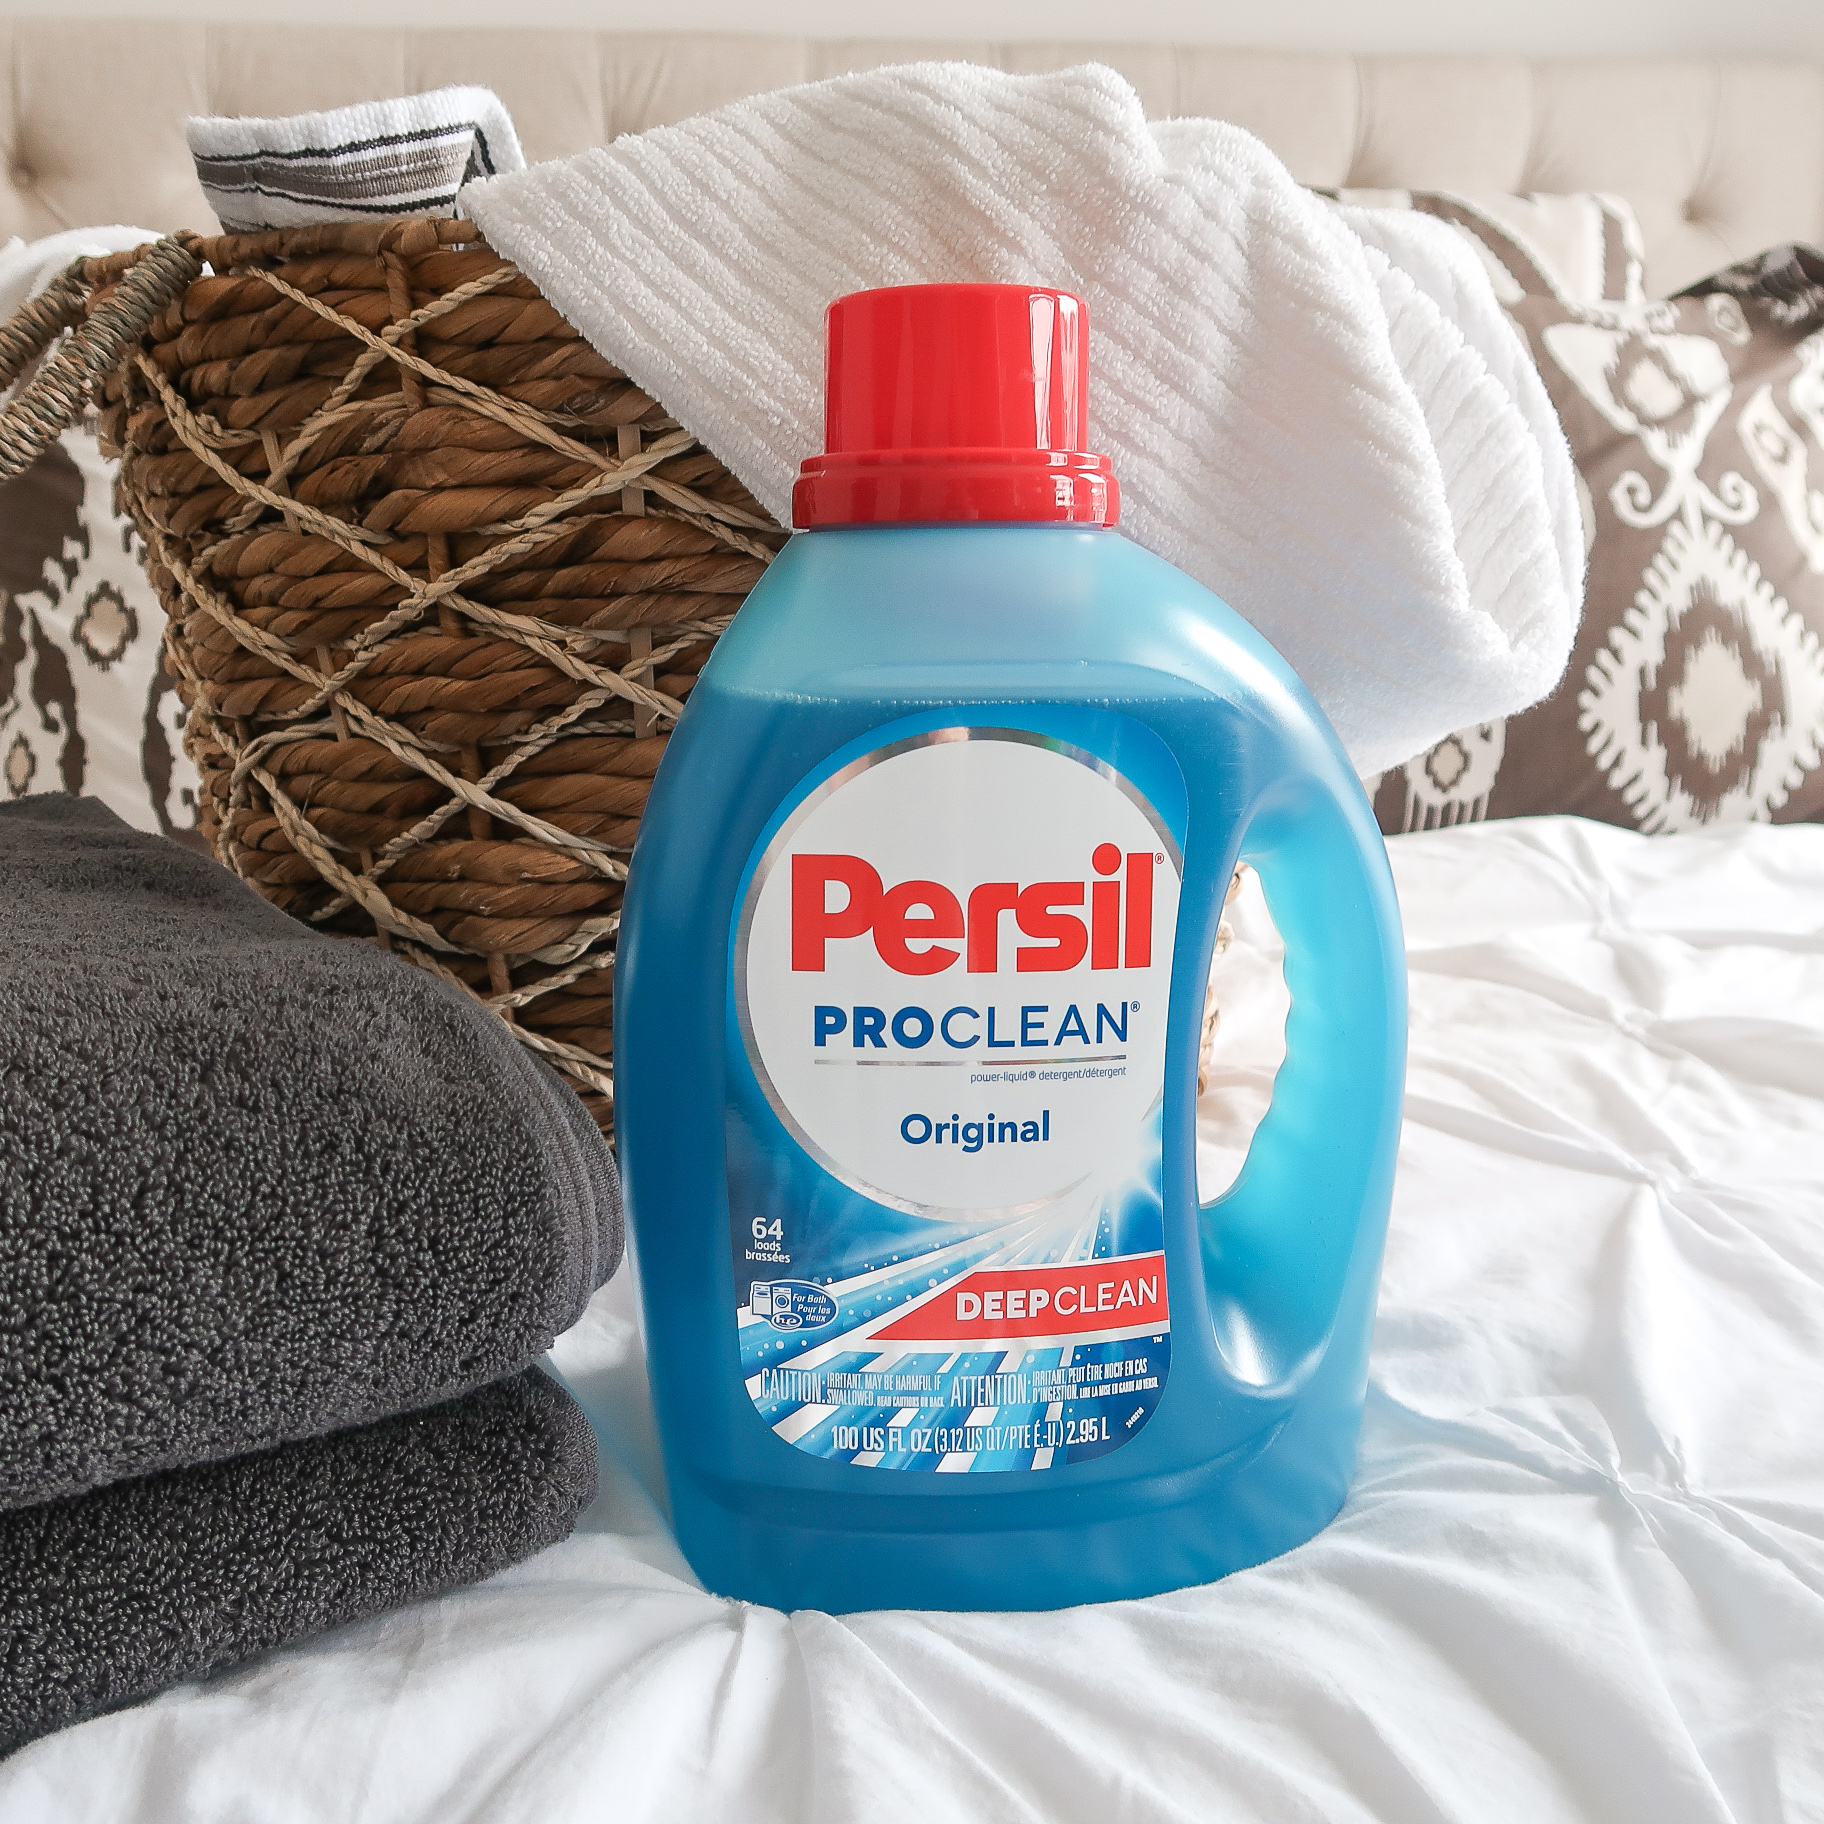 A-Pet-parents-guide-to-tough-stains-persil-laundry-detergent-11.jpg